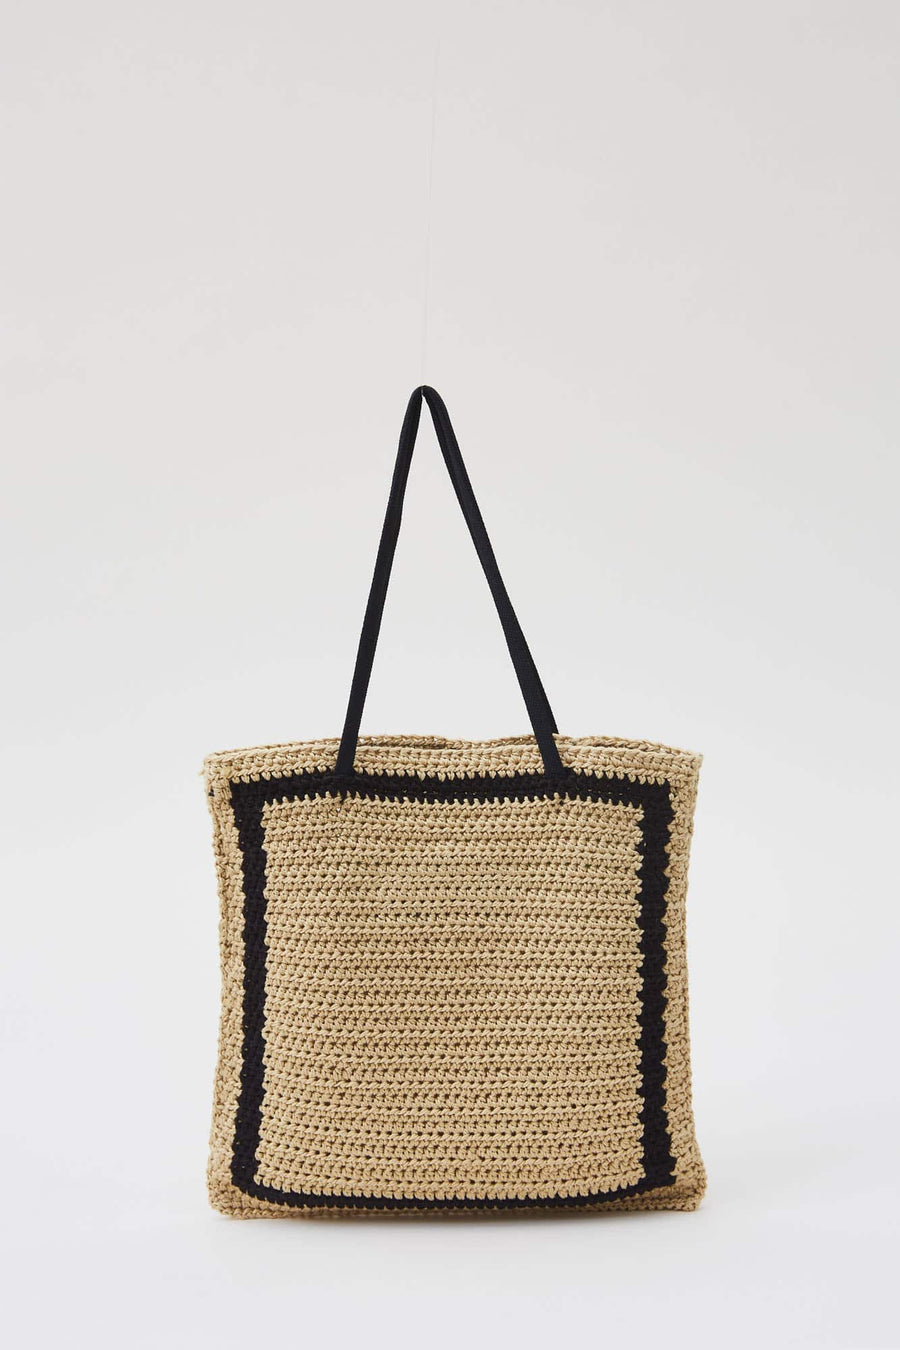 Rool Tote Bag-straw square